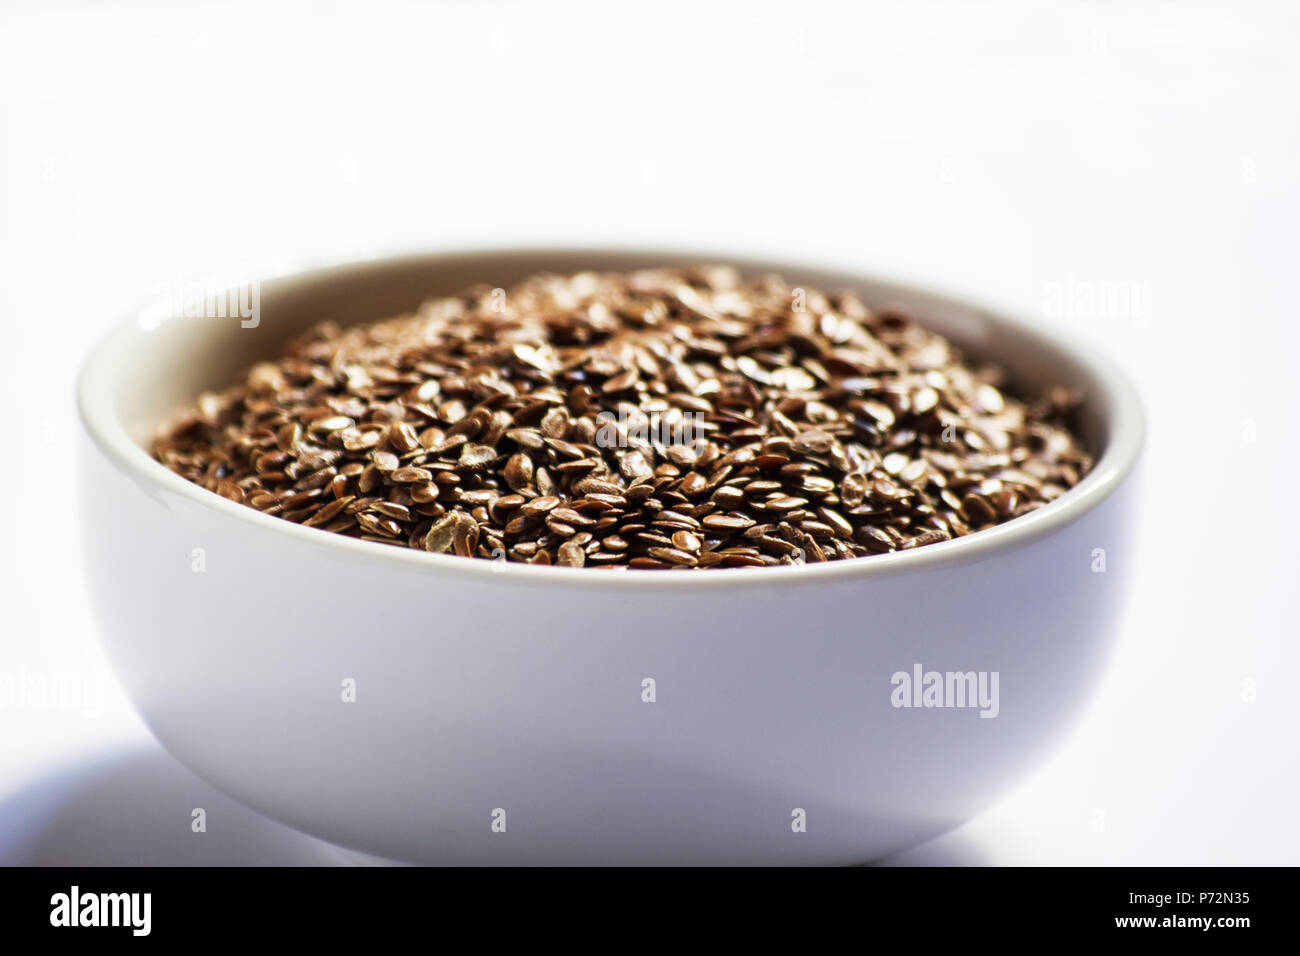 Flax seed in a white bowl on white background - Stock Image